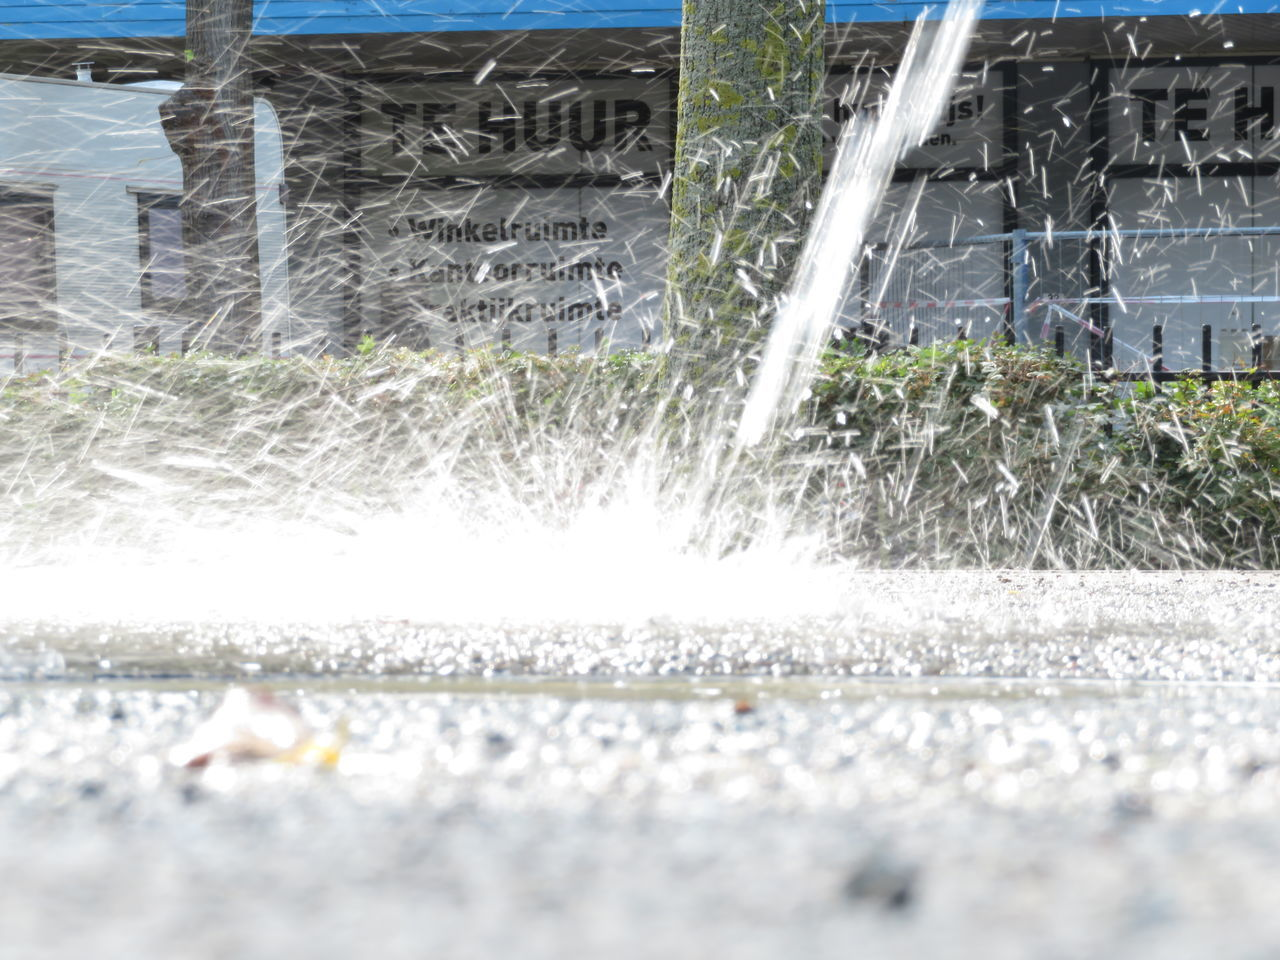 motion, architecture, day, nature, water, outdoors, sunlight, blurred motion, no people, speed, plant, splashing, transportation, city, built structure, street, building exterior, surface level, road, gardening, flowing water